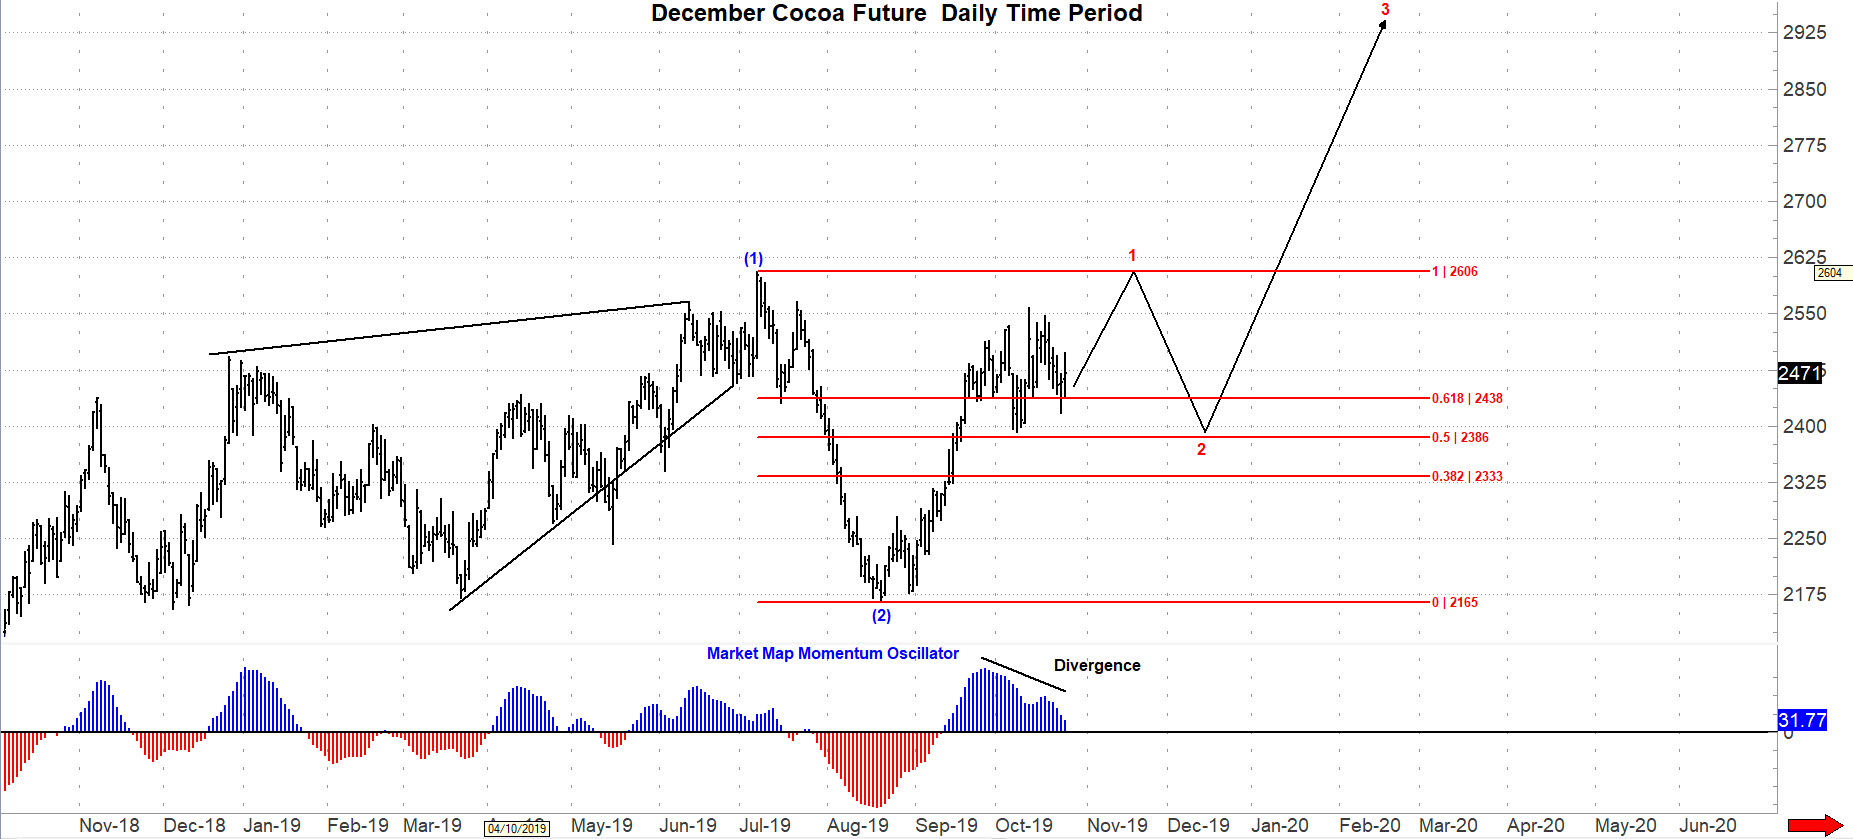 December Cocoa Futures Daily Chart